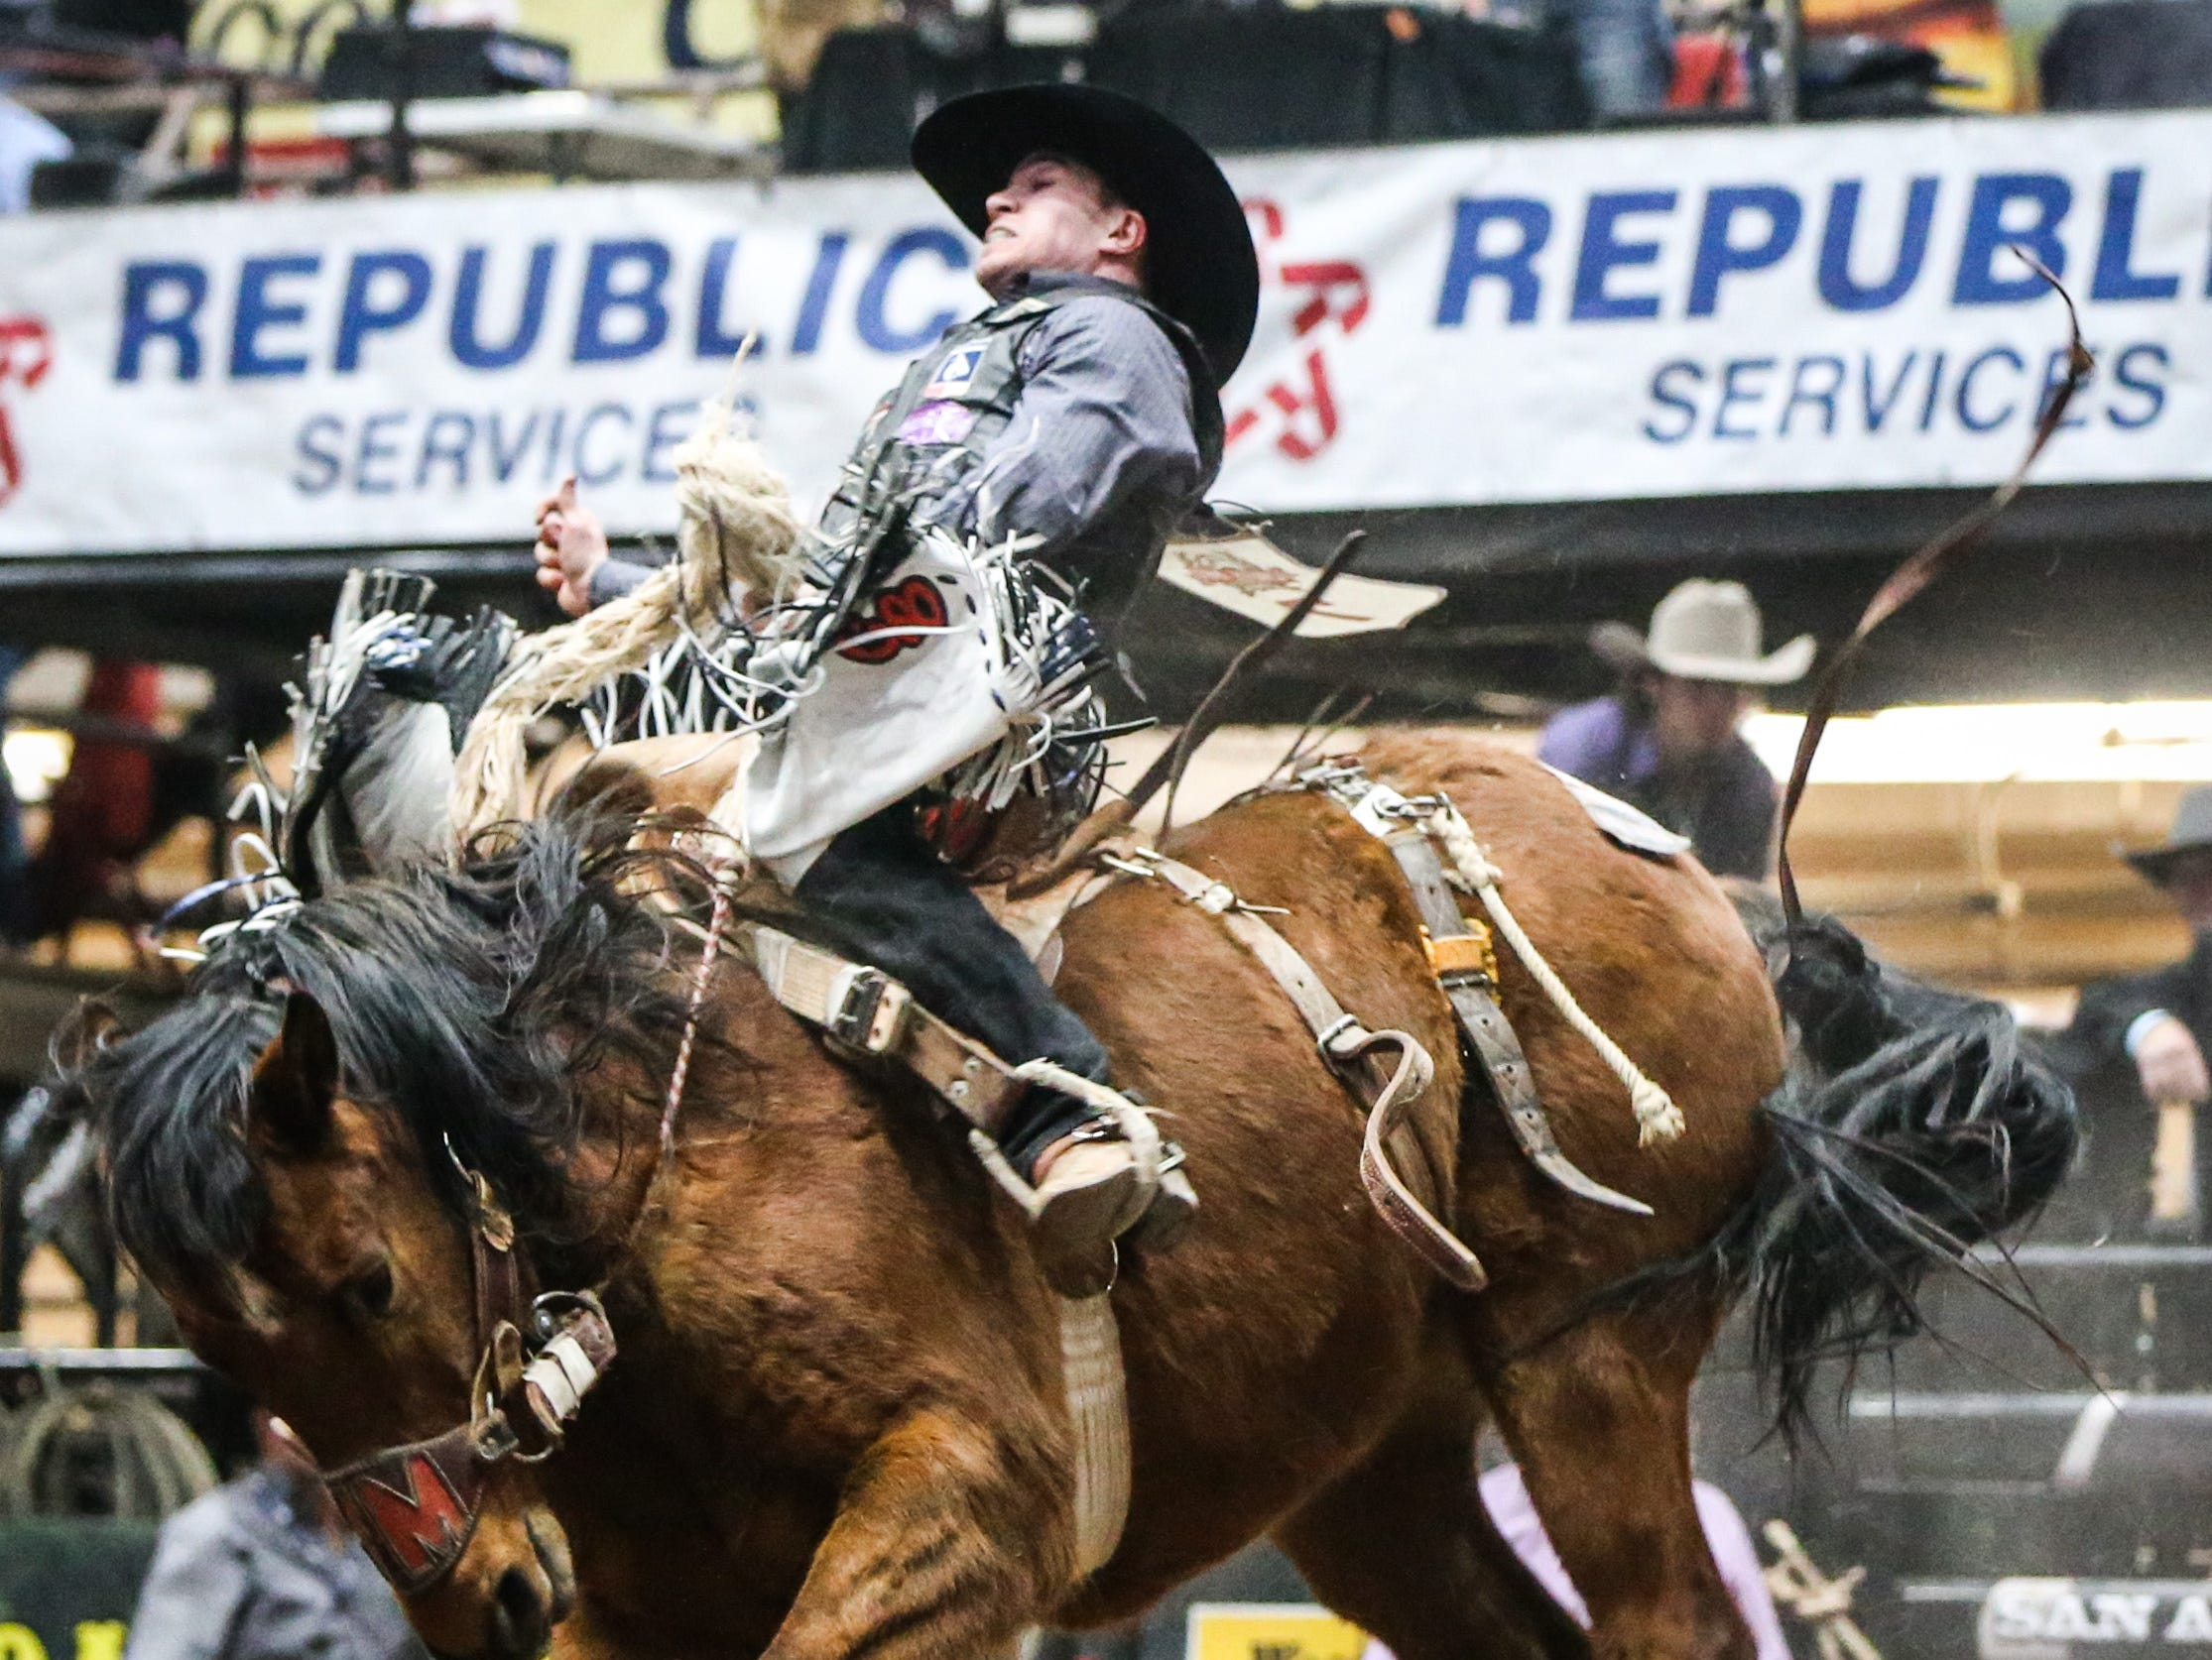 Chase Brooks rides Get Smart during Cinch Chute Out Saturday, Feb. 16, 2019, at Foster Communications Coliseum. Brooks was the saddle bronc riding champion.